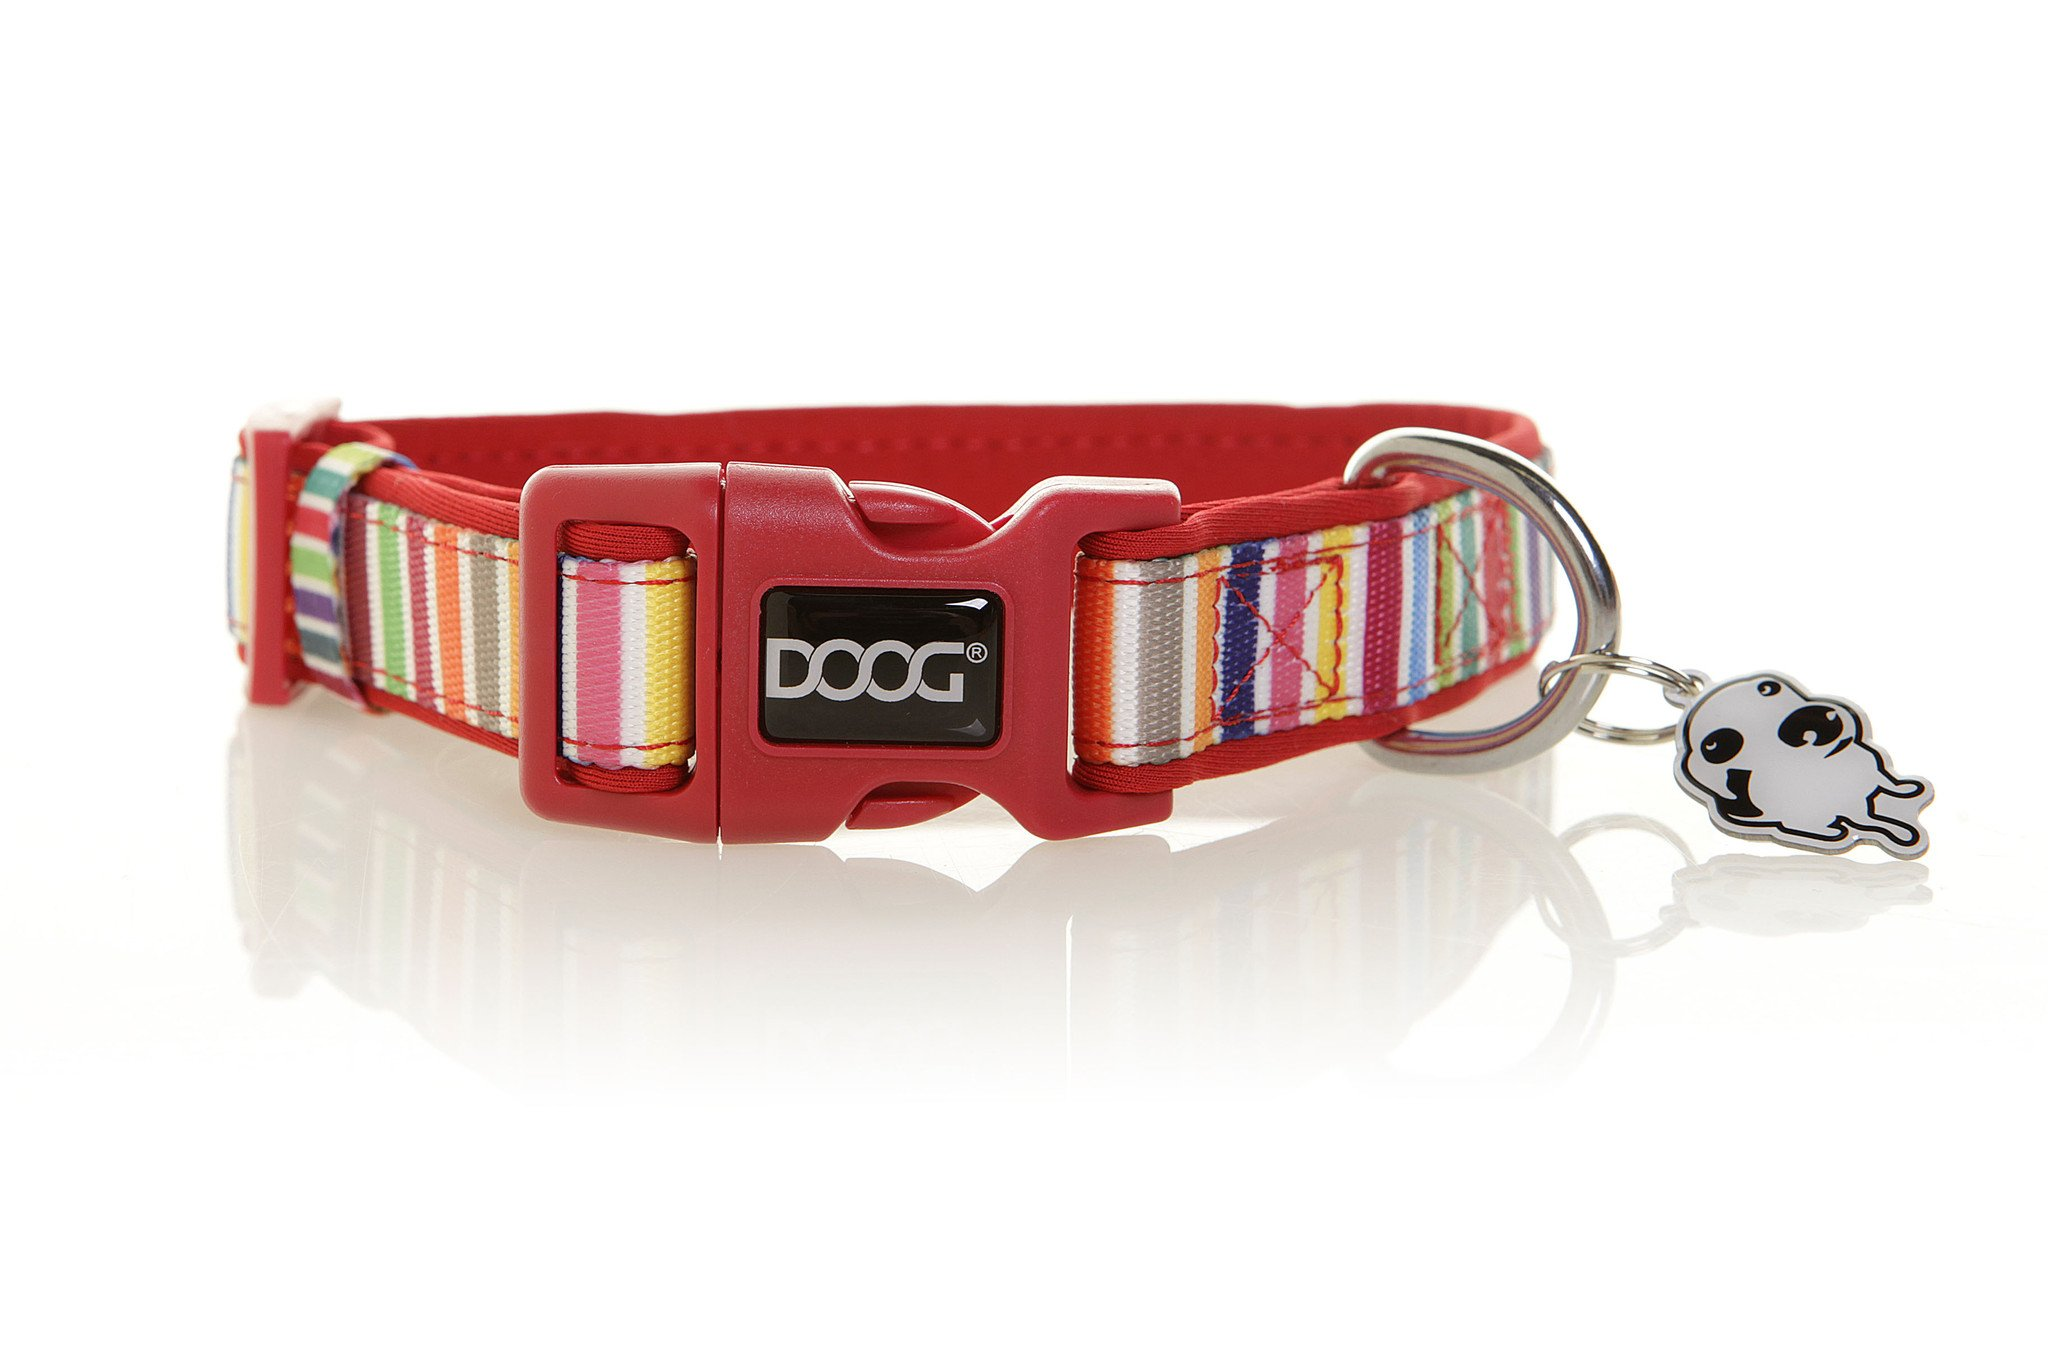 Dog Owners Outdoor Gear COLMCS-L